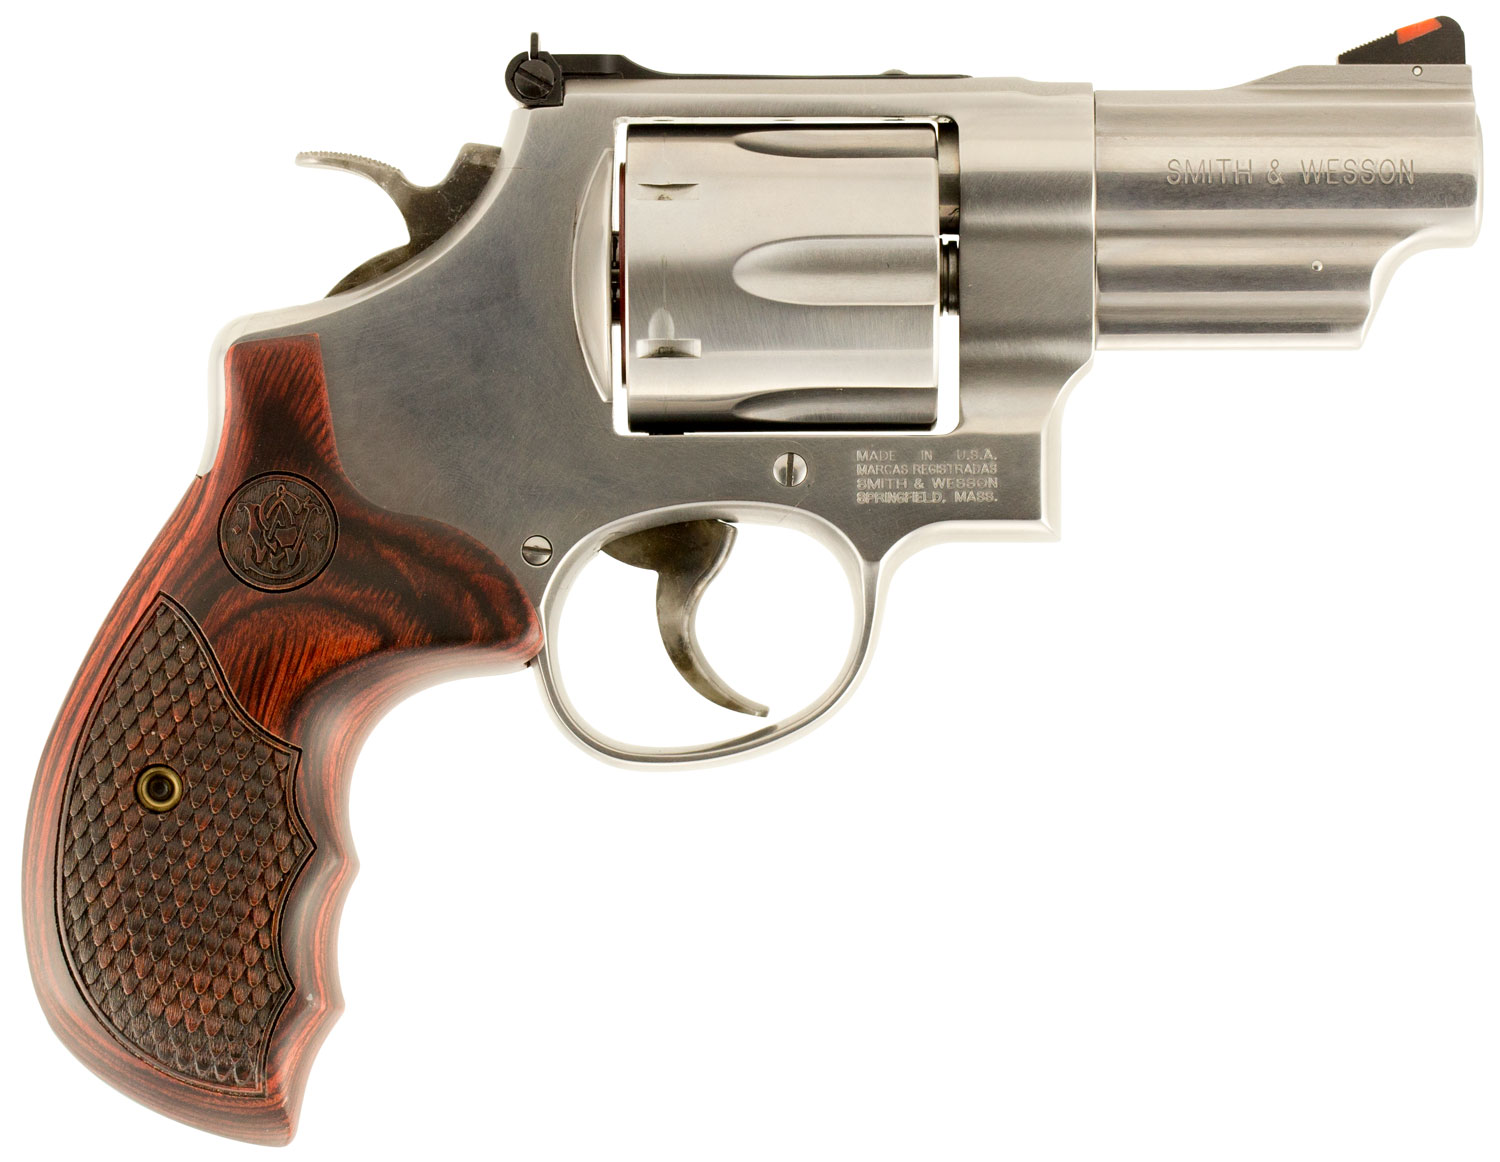 Smith & Wesson 150715 629 Deluxe Single/Double 44 Remington Magnum 3